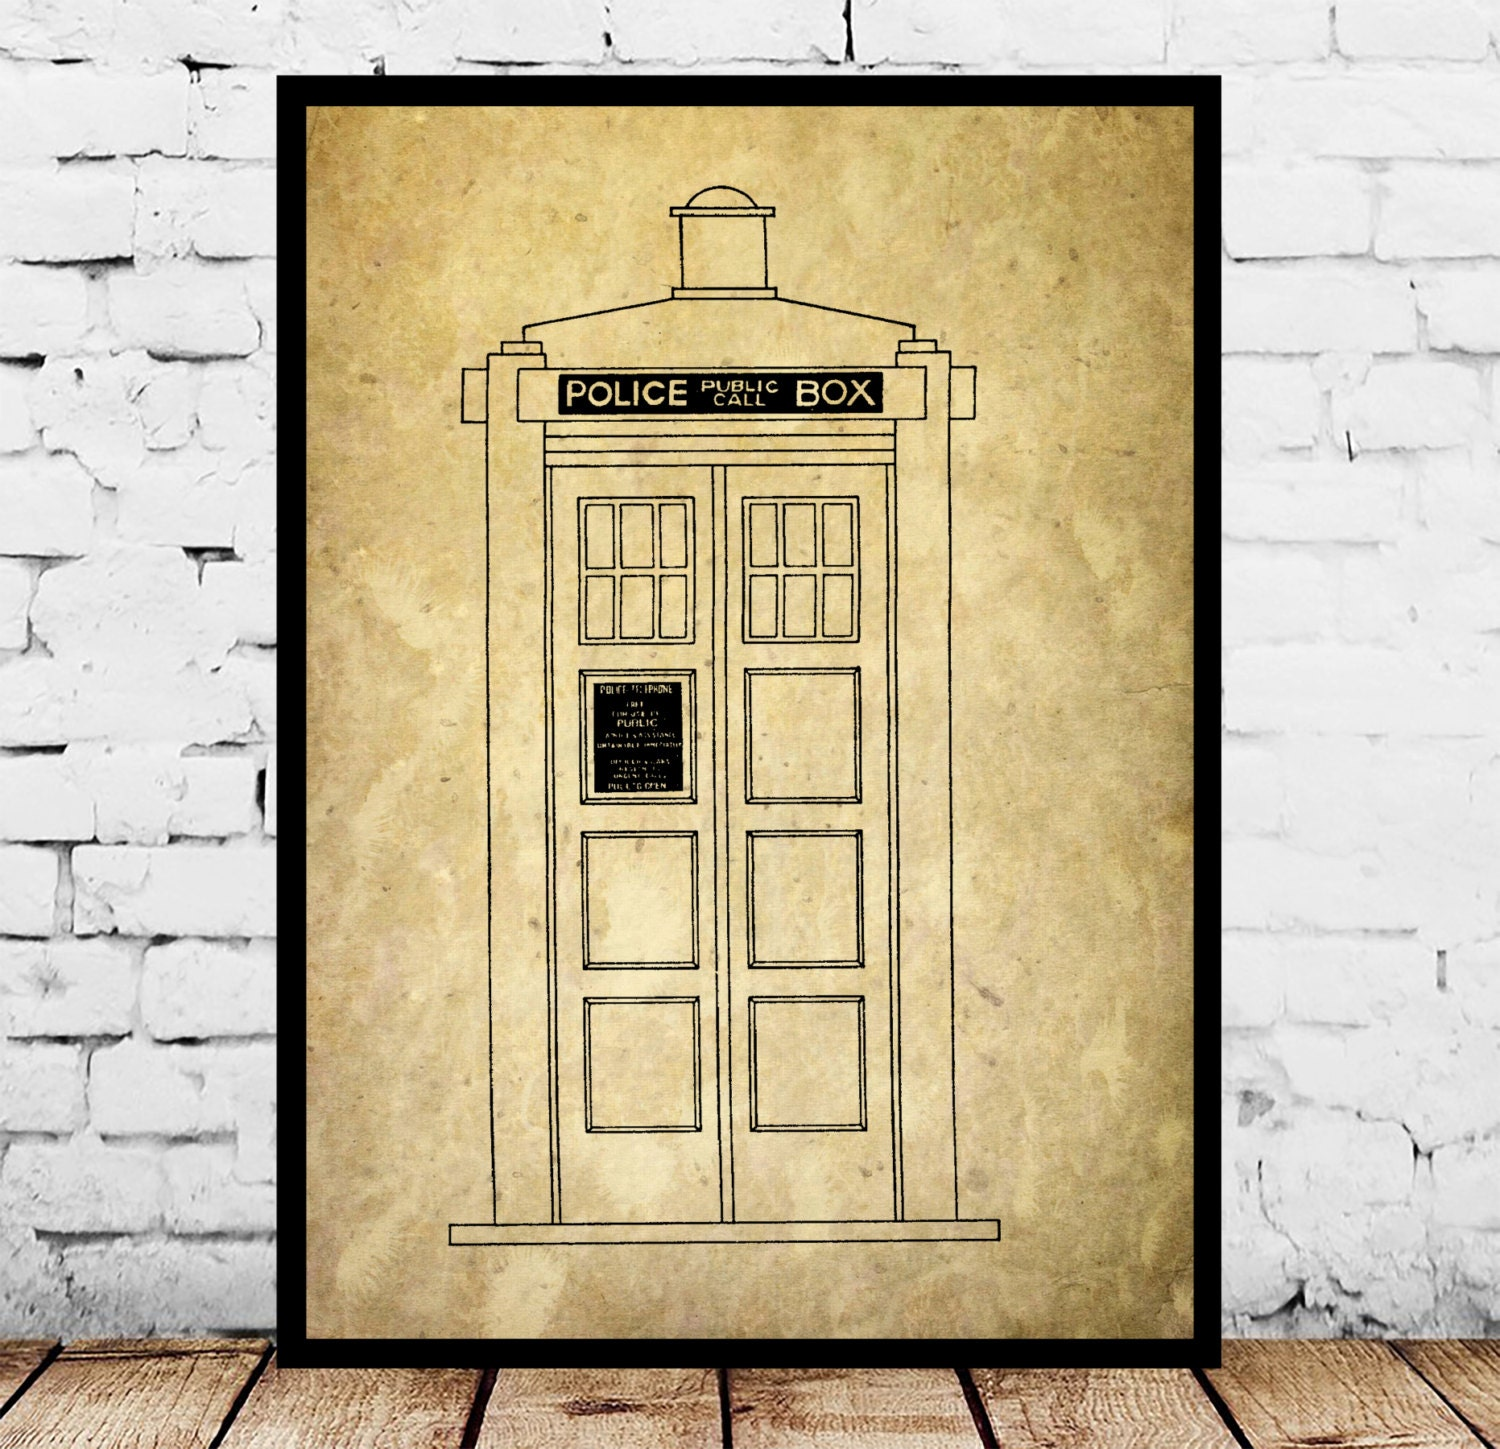 Doctor who tardis patent dr who tardis poster tardis blueprint doctor who tardis patent dr who tardis poster tardis blueprint dr who tardis print dr who art doctor who tardis decor malvernweather Gallery